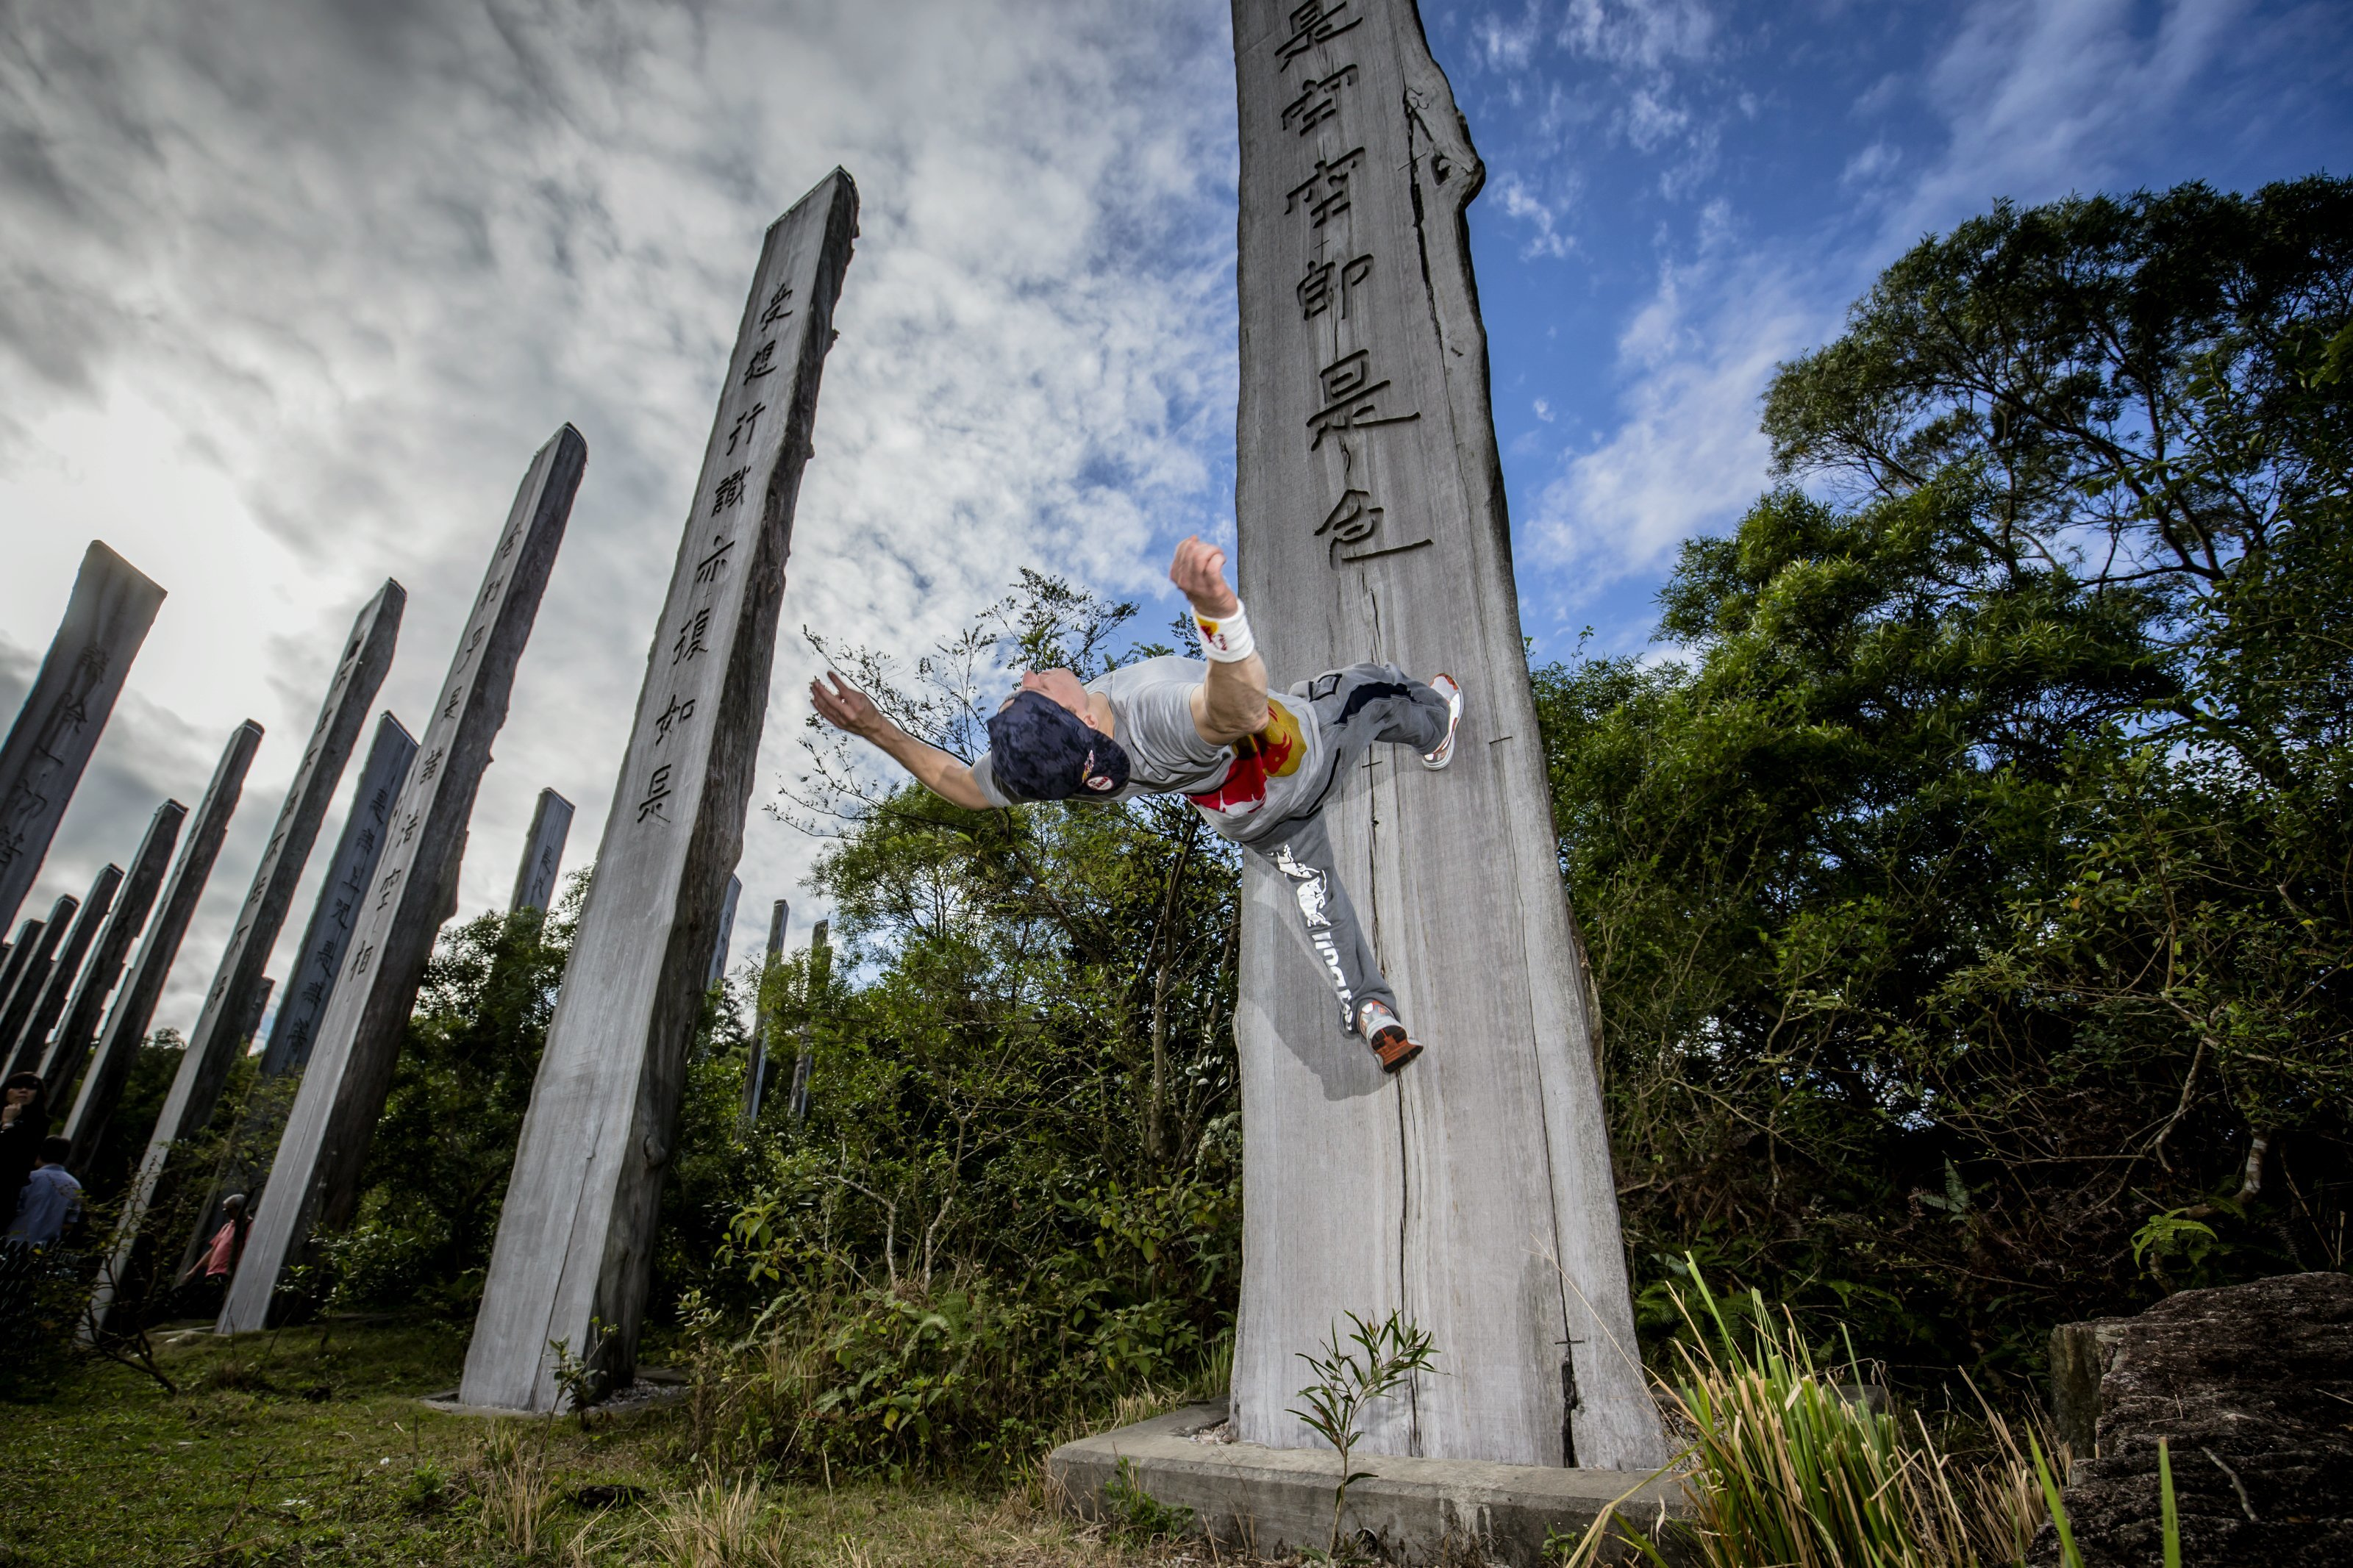 Freerunning Around The World With Ryan Doyle Impakter The two playgrounds are built for all. with ryan doyle